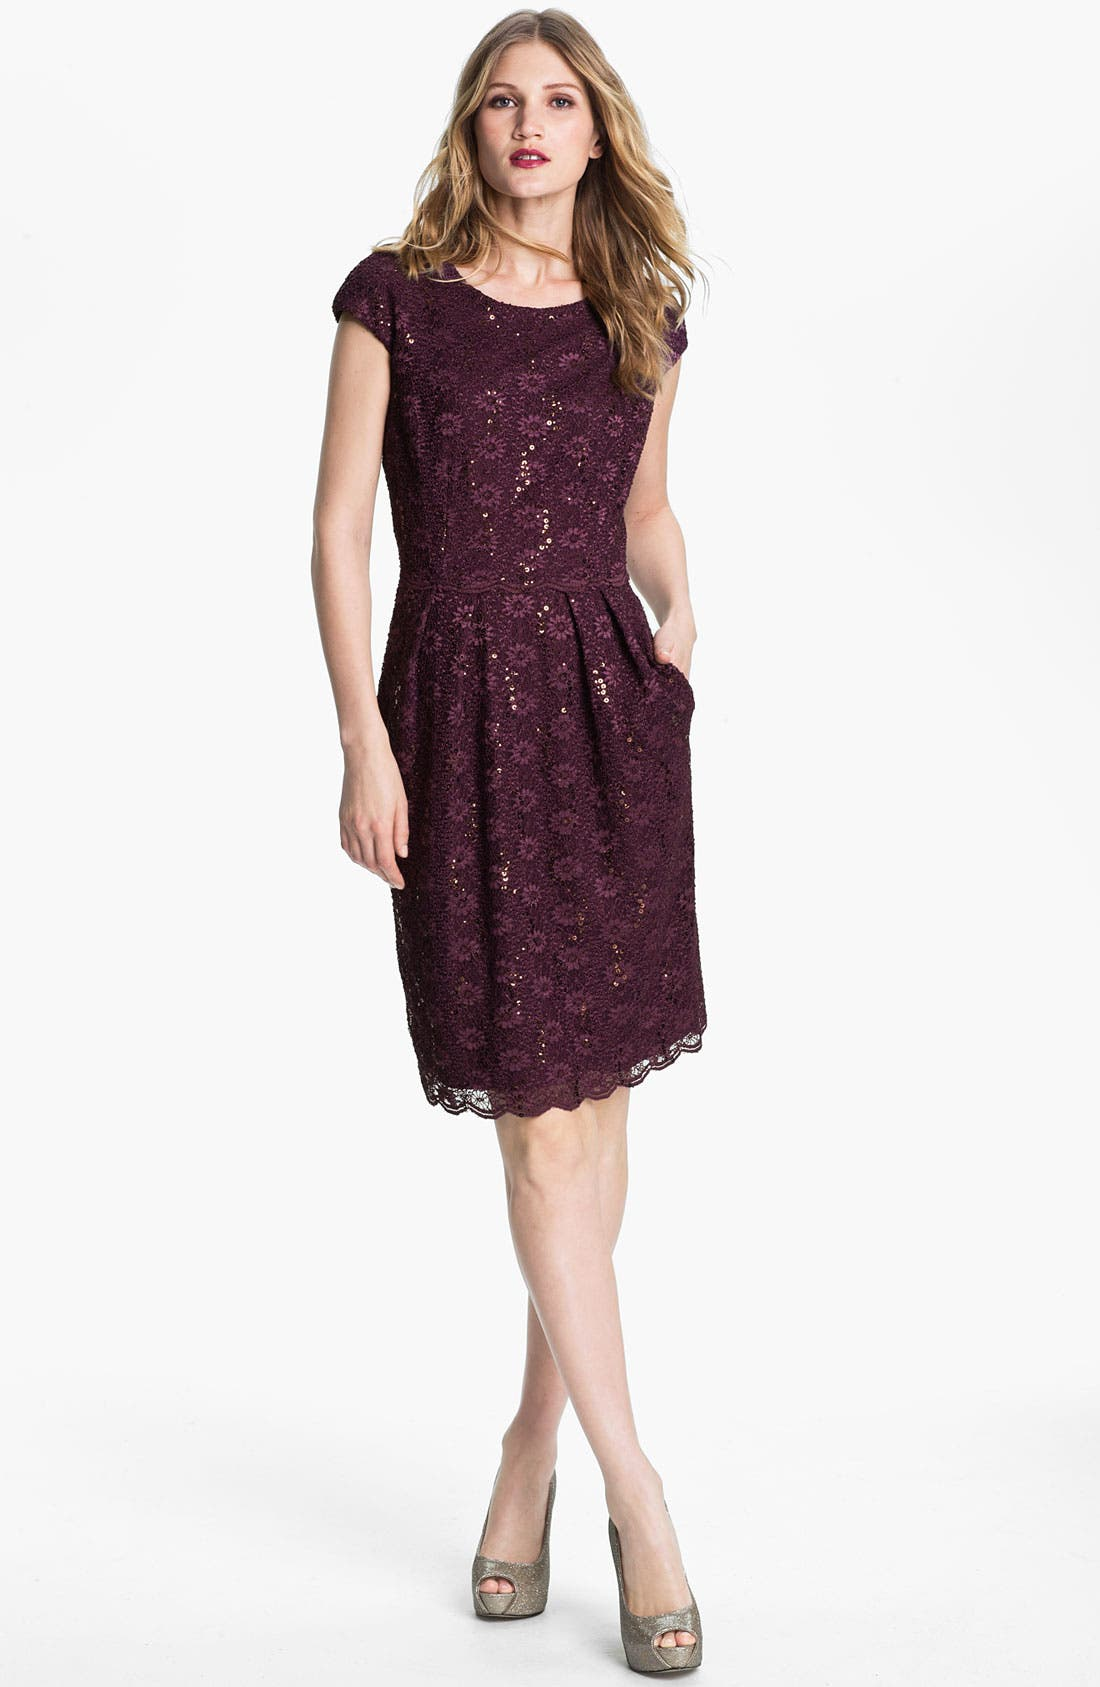 Alternate Image 1 Selected - Alex Evenings Sequin Lace Overlay Sheath Dress (Petite)